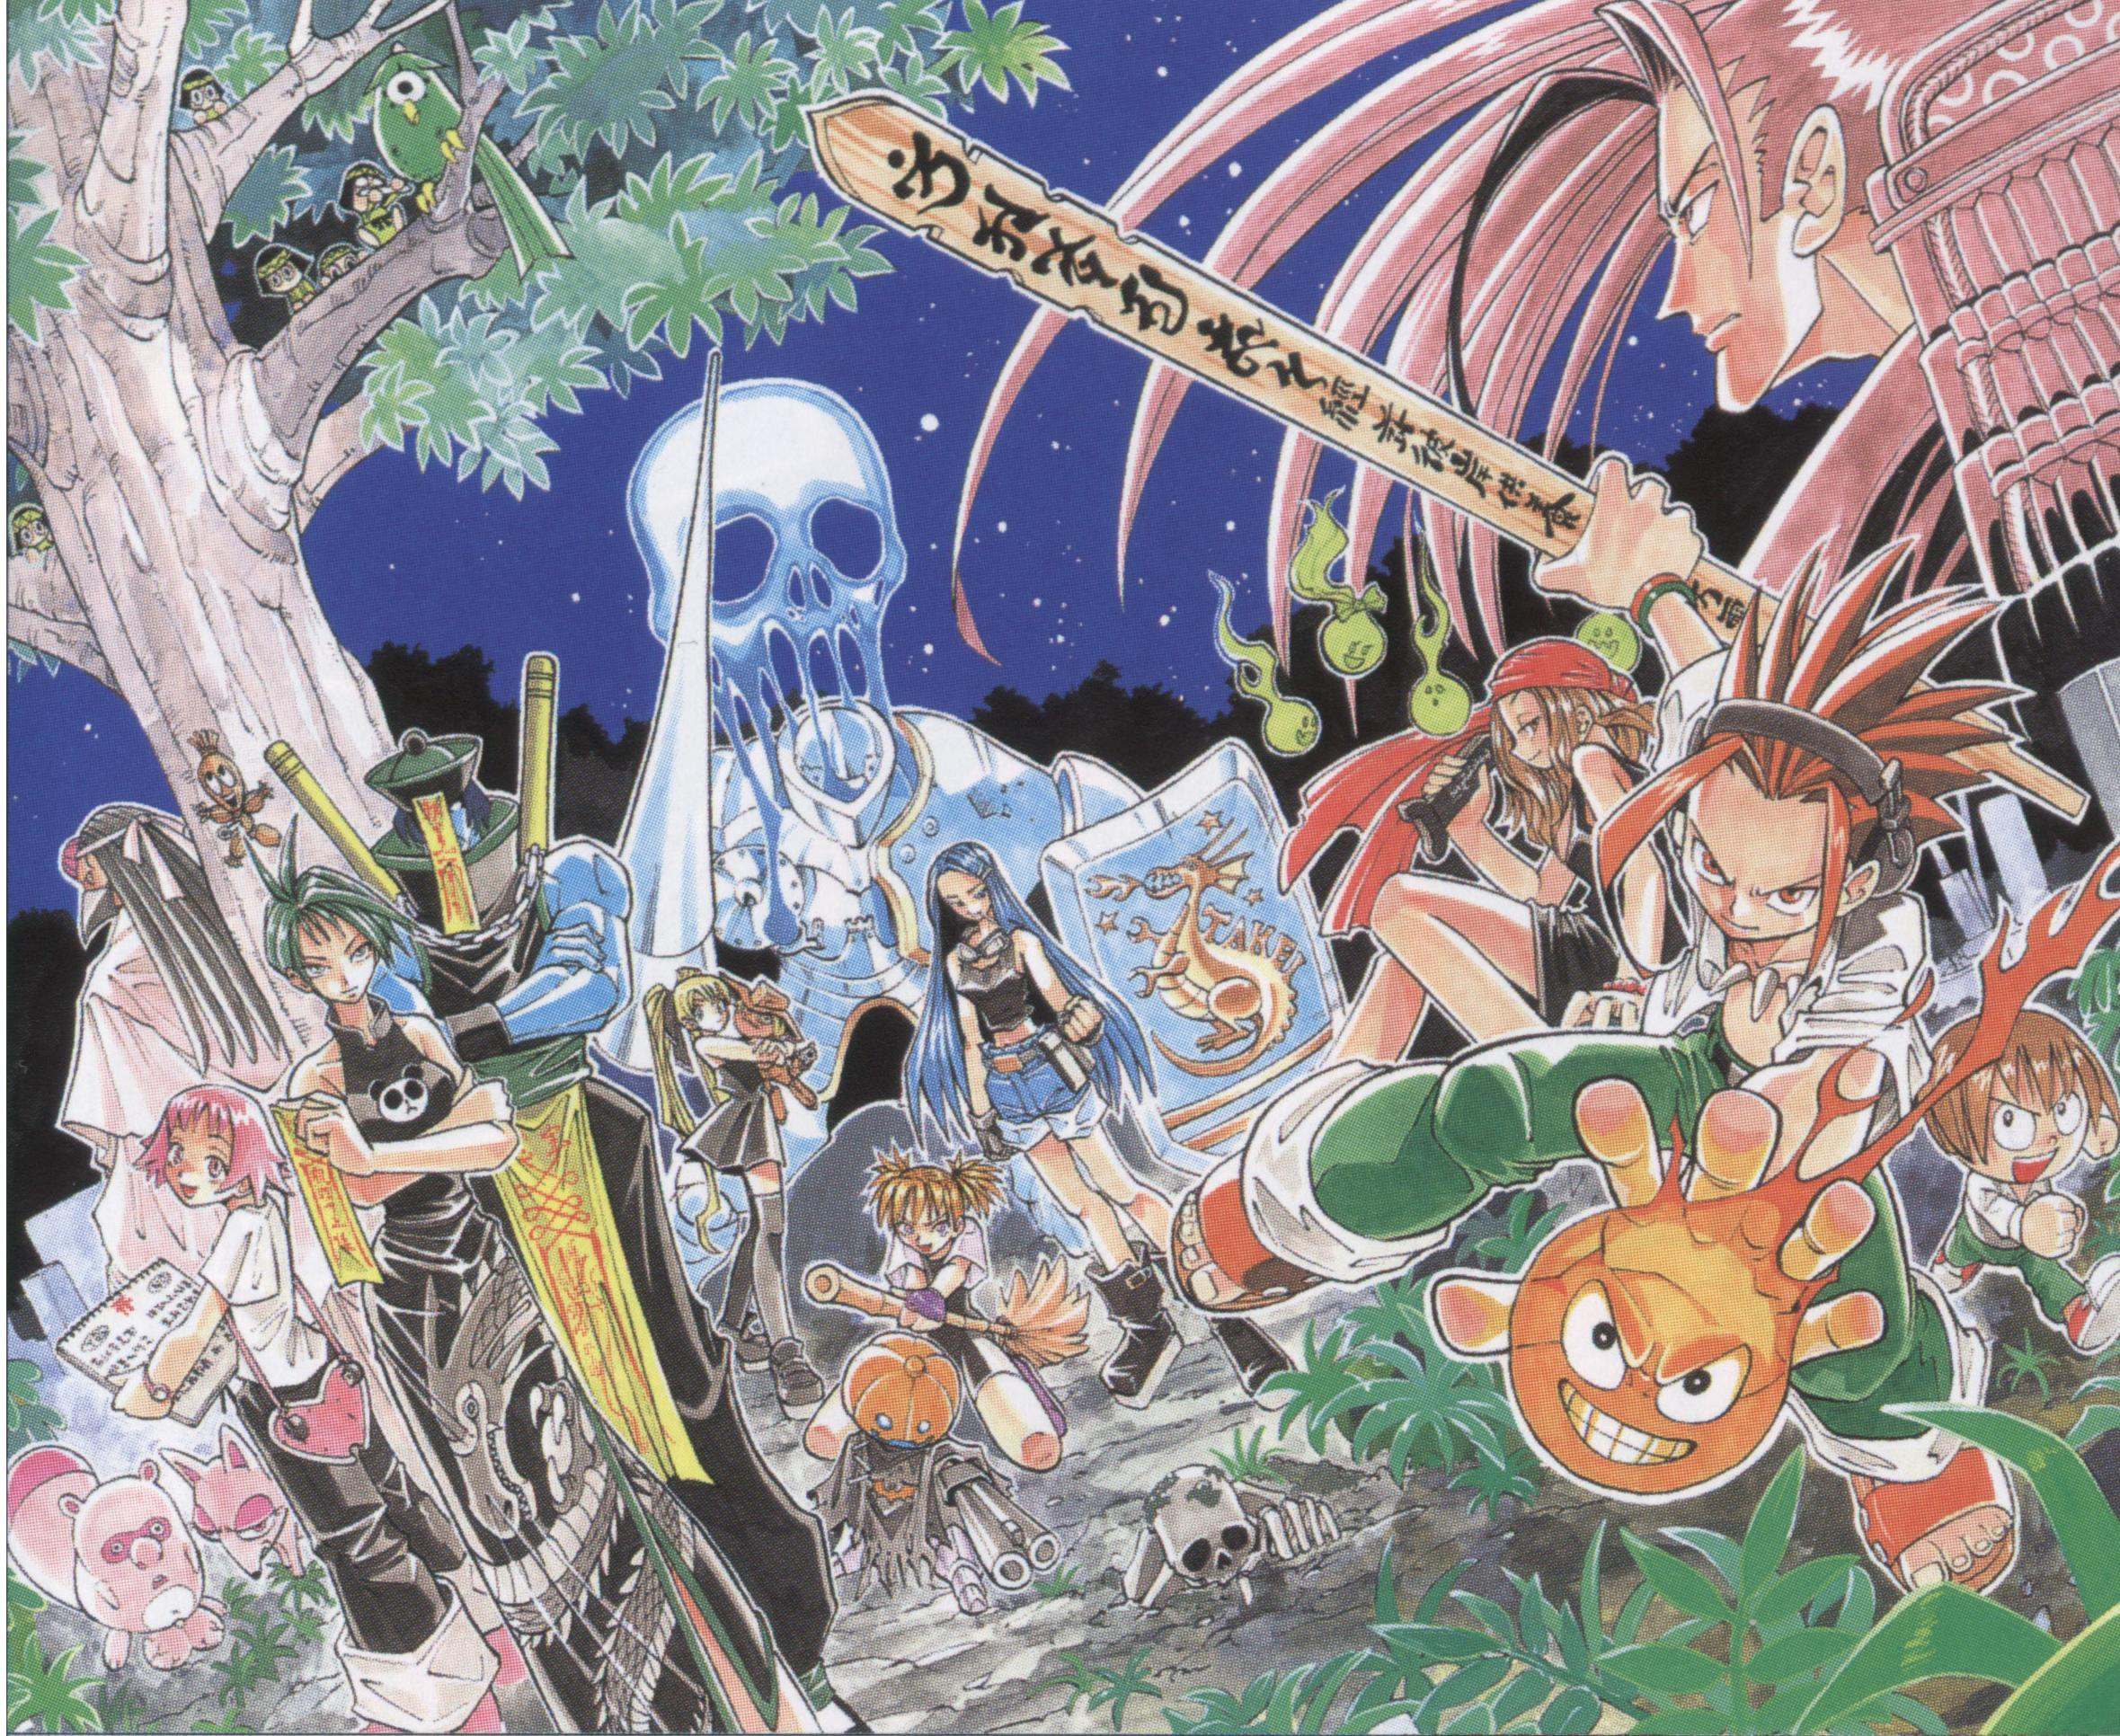 Tags: Anime, Halloween, Shaman King, Asakura Yoh, Amidamaru, Tao Jun